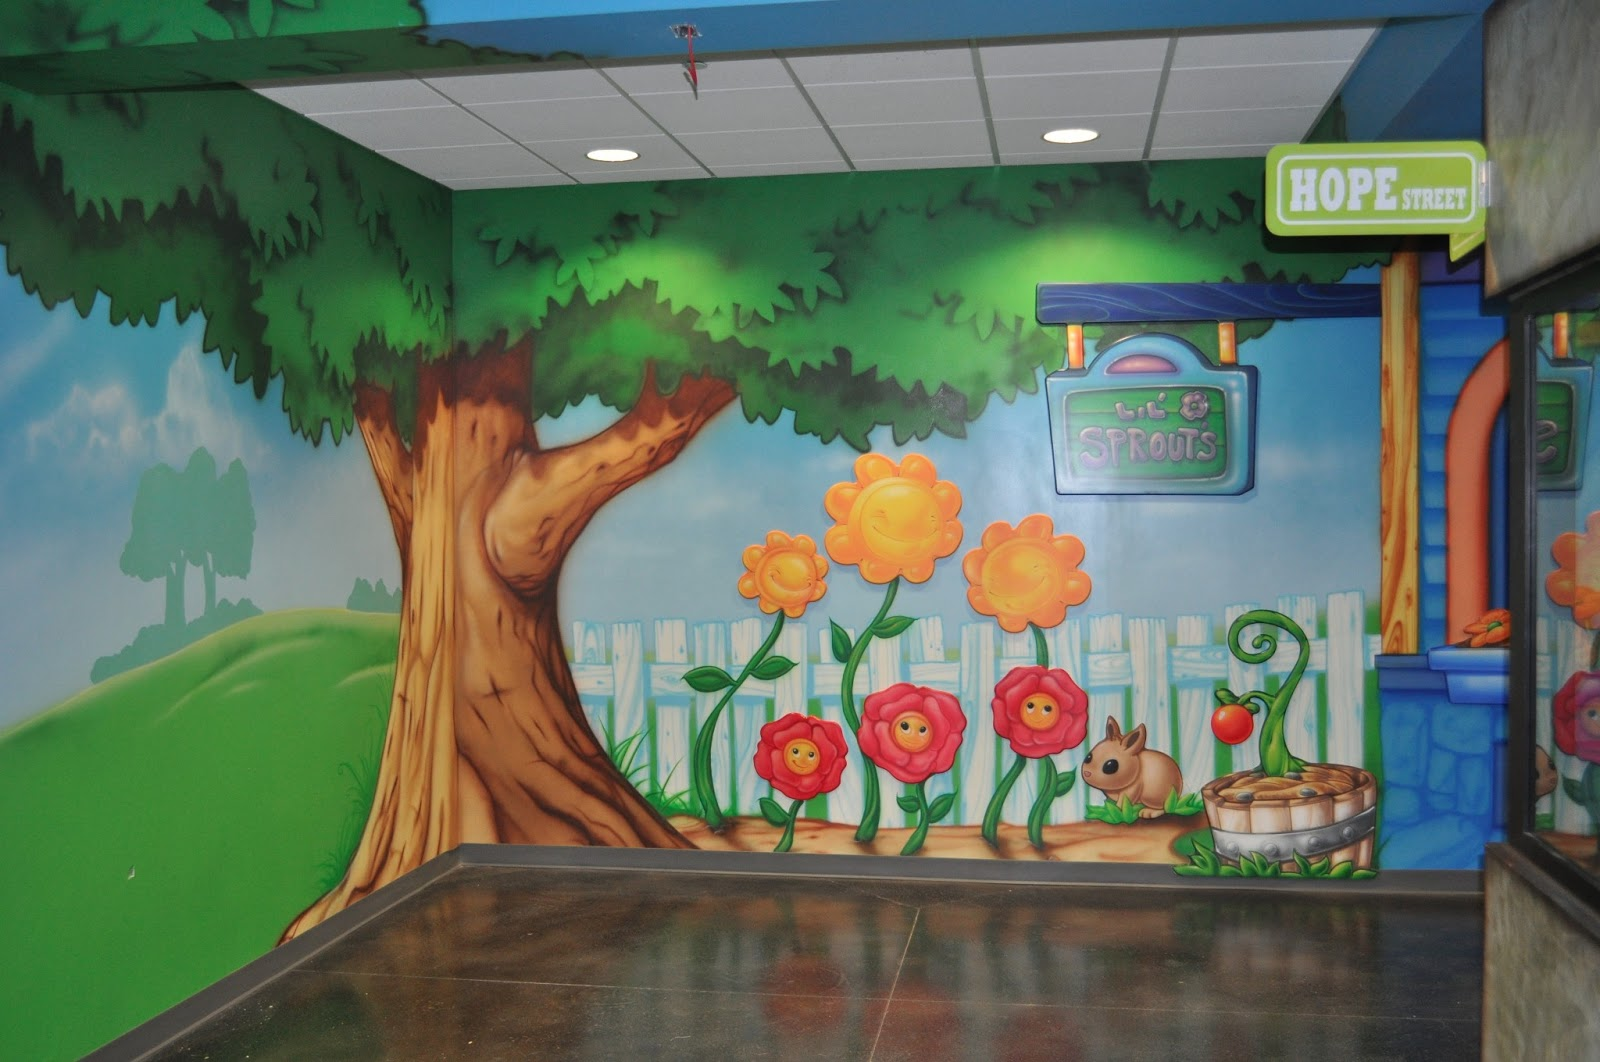 Kids ministry theme indoor playground worlds of wow blog for Church mural ideas